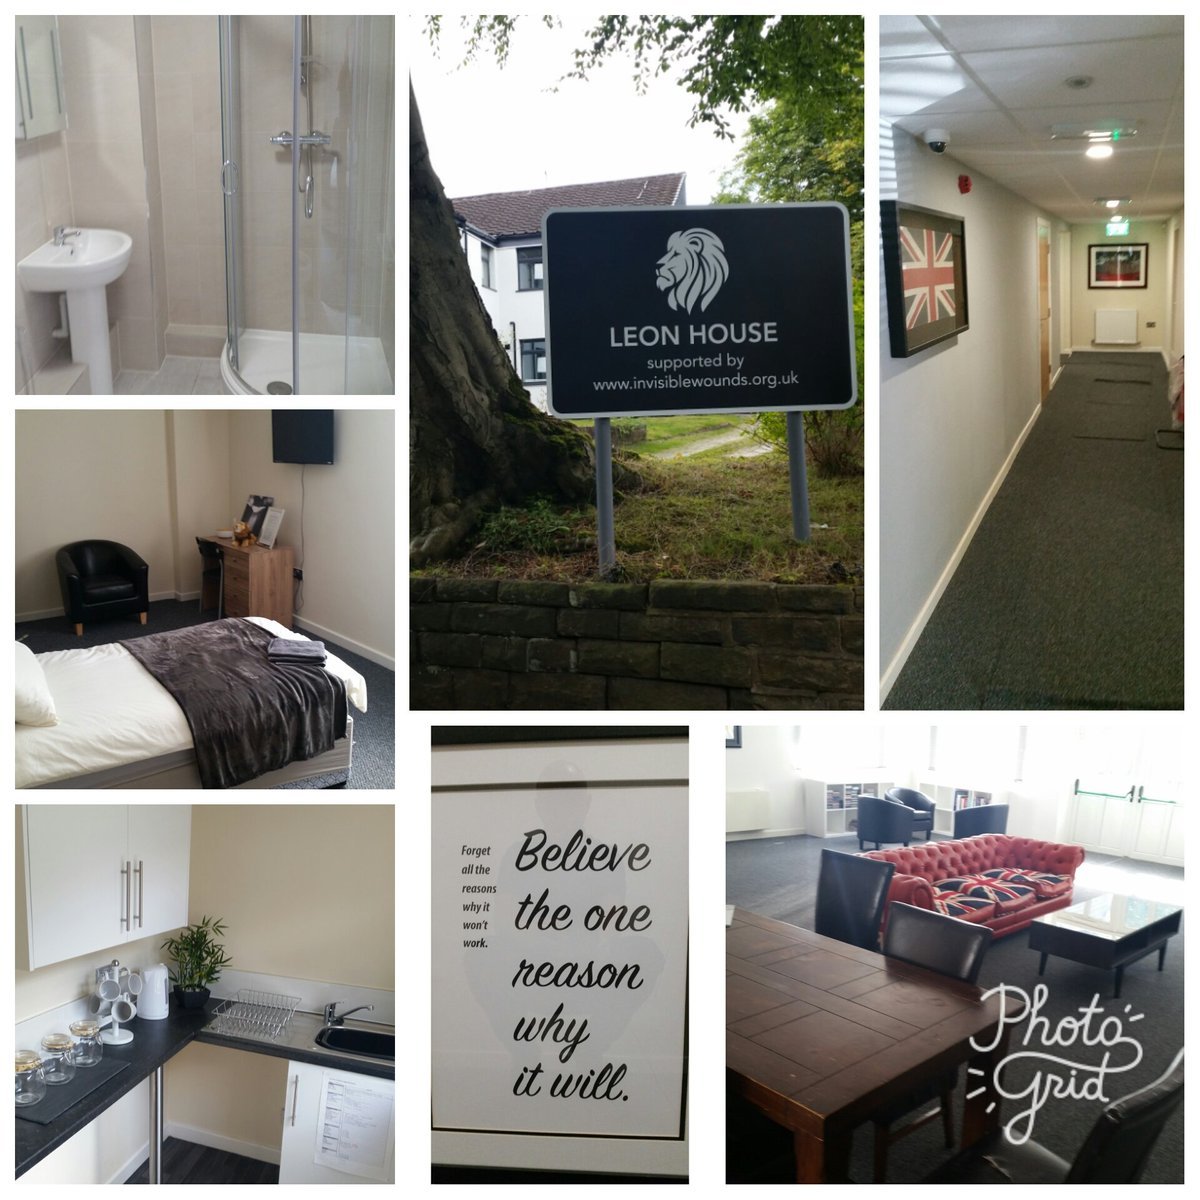 Leon House Prestwich, ready to take its first veterans struggling to cope. Excellent facility. #ptsd #veterans # armed forces #vulnerability <br>http://pic.twitter.com/FjYOF5vCwF